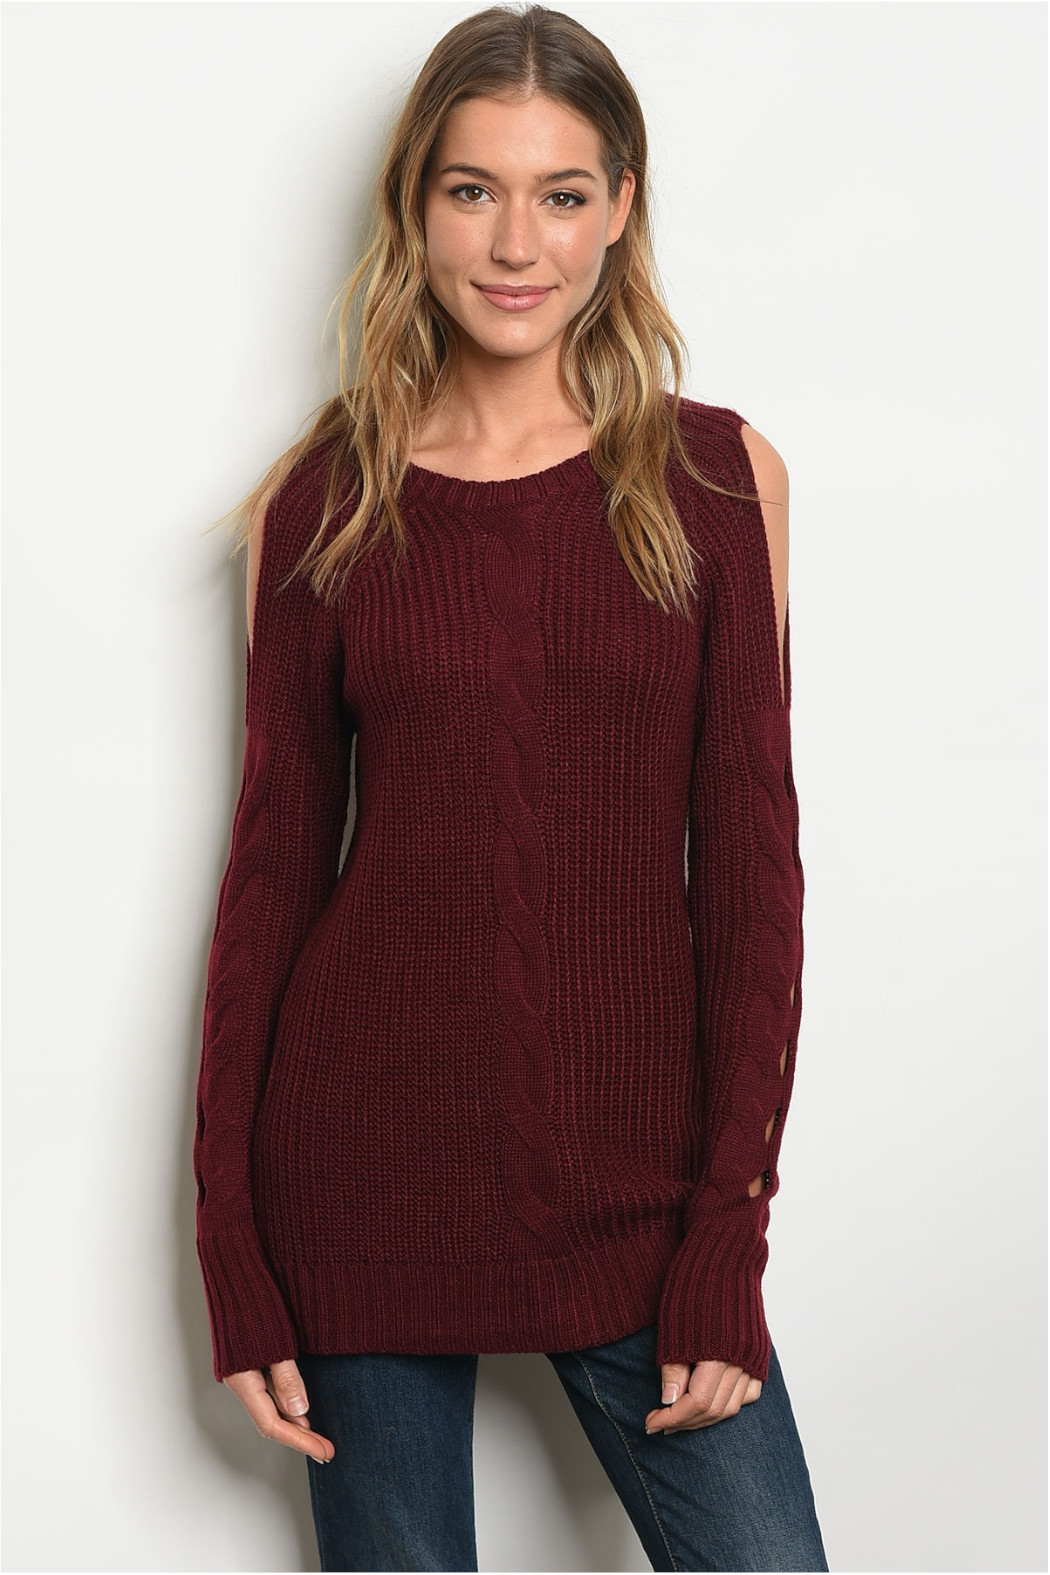 LoveRiche Wine Cable Knit Sweater - Main Image